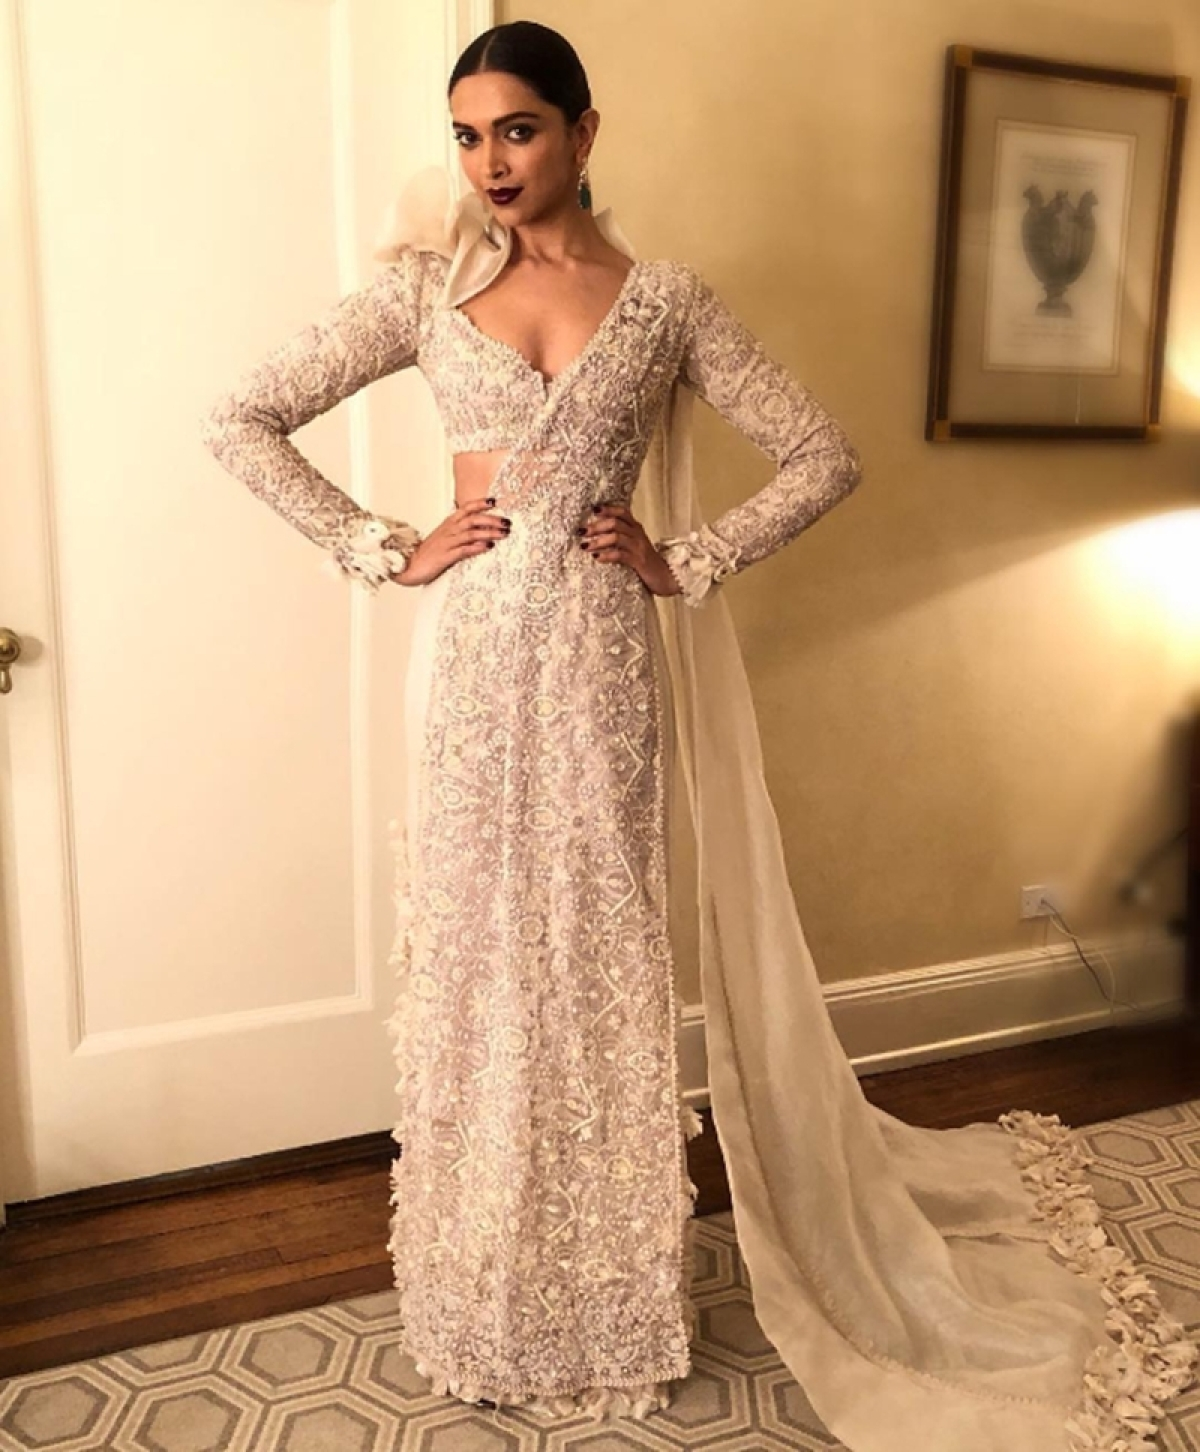 Deepika Padukone shines brighter than a diamond at Time 100 Gala 2018 but leaves us dissatisfied!